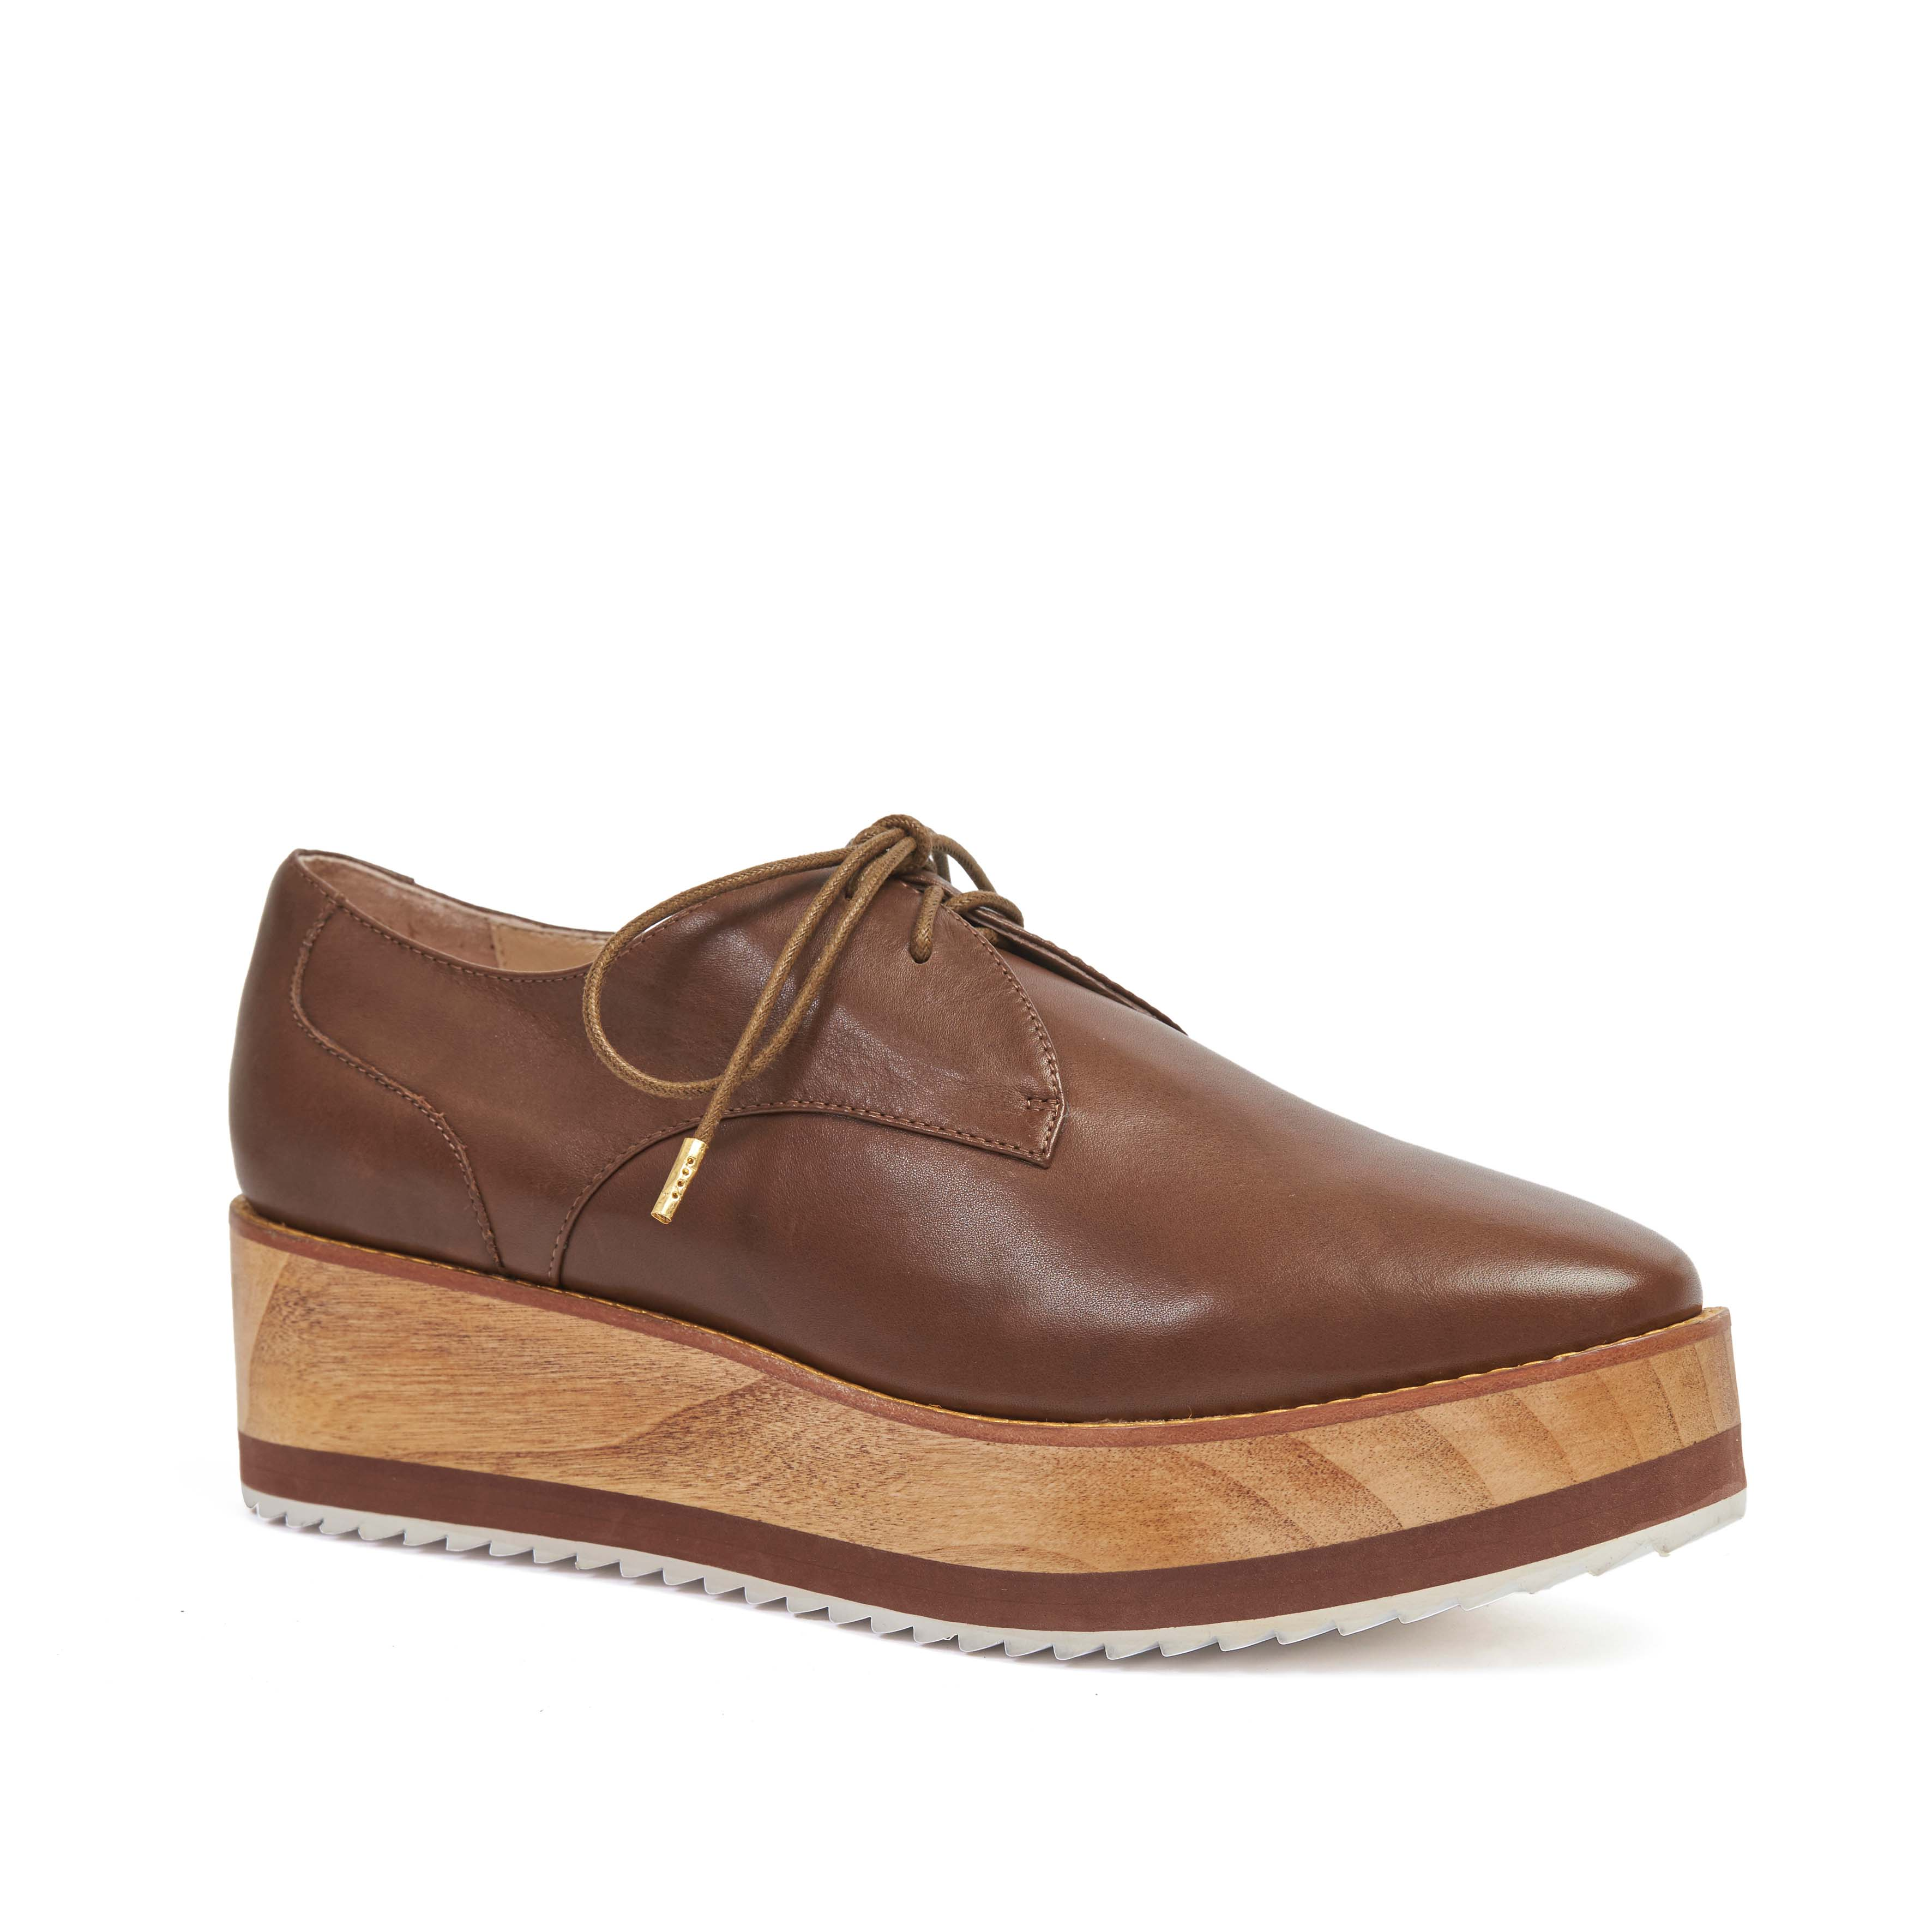 406 Jamie Brogue Tobacco